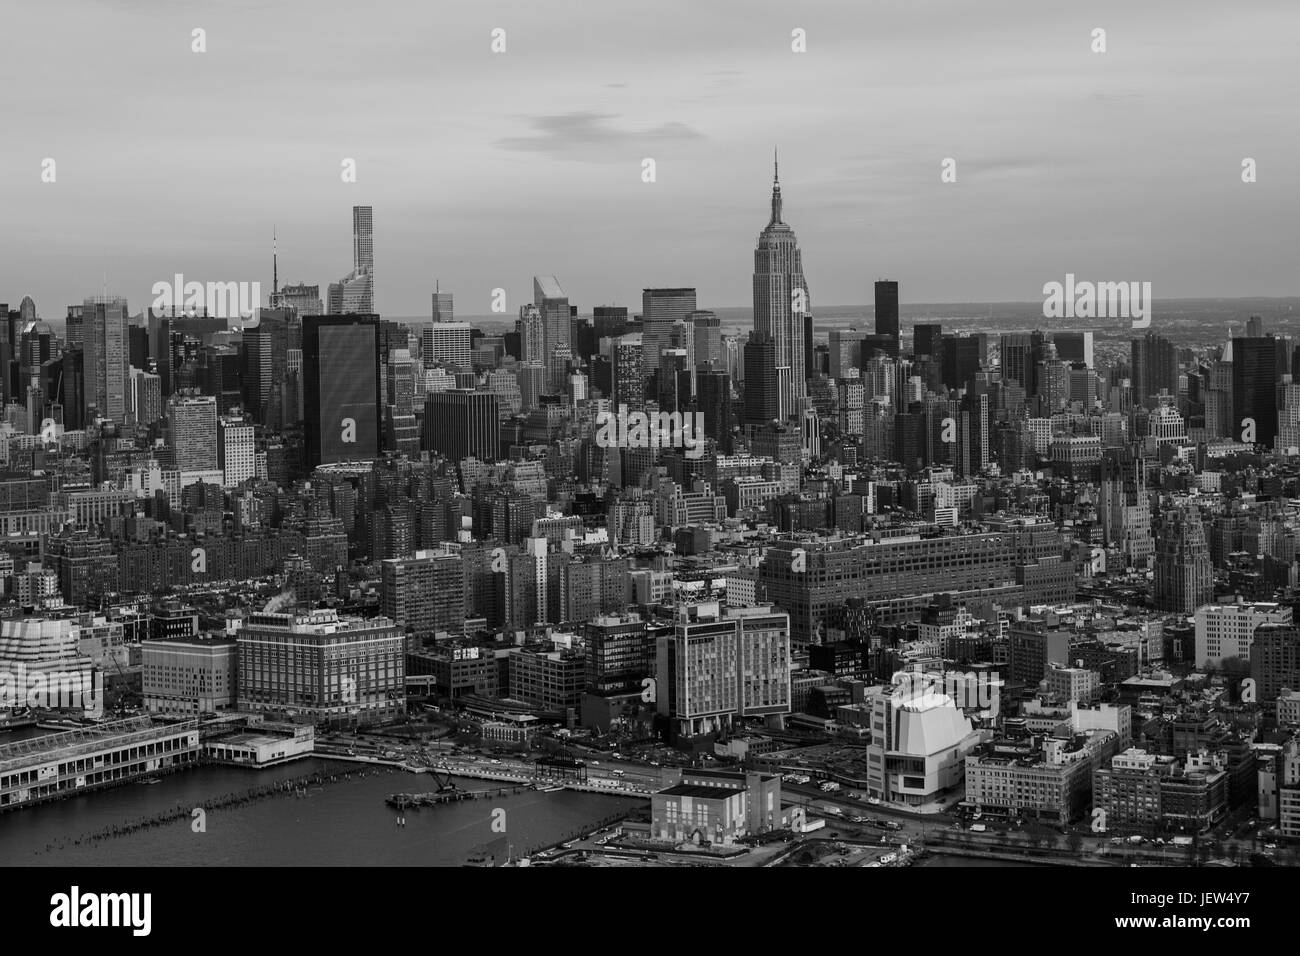 Midtown Manhattan and the Empire State Building Aerial View - Stock Image